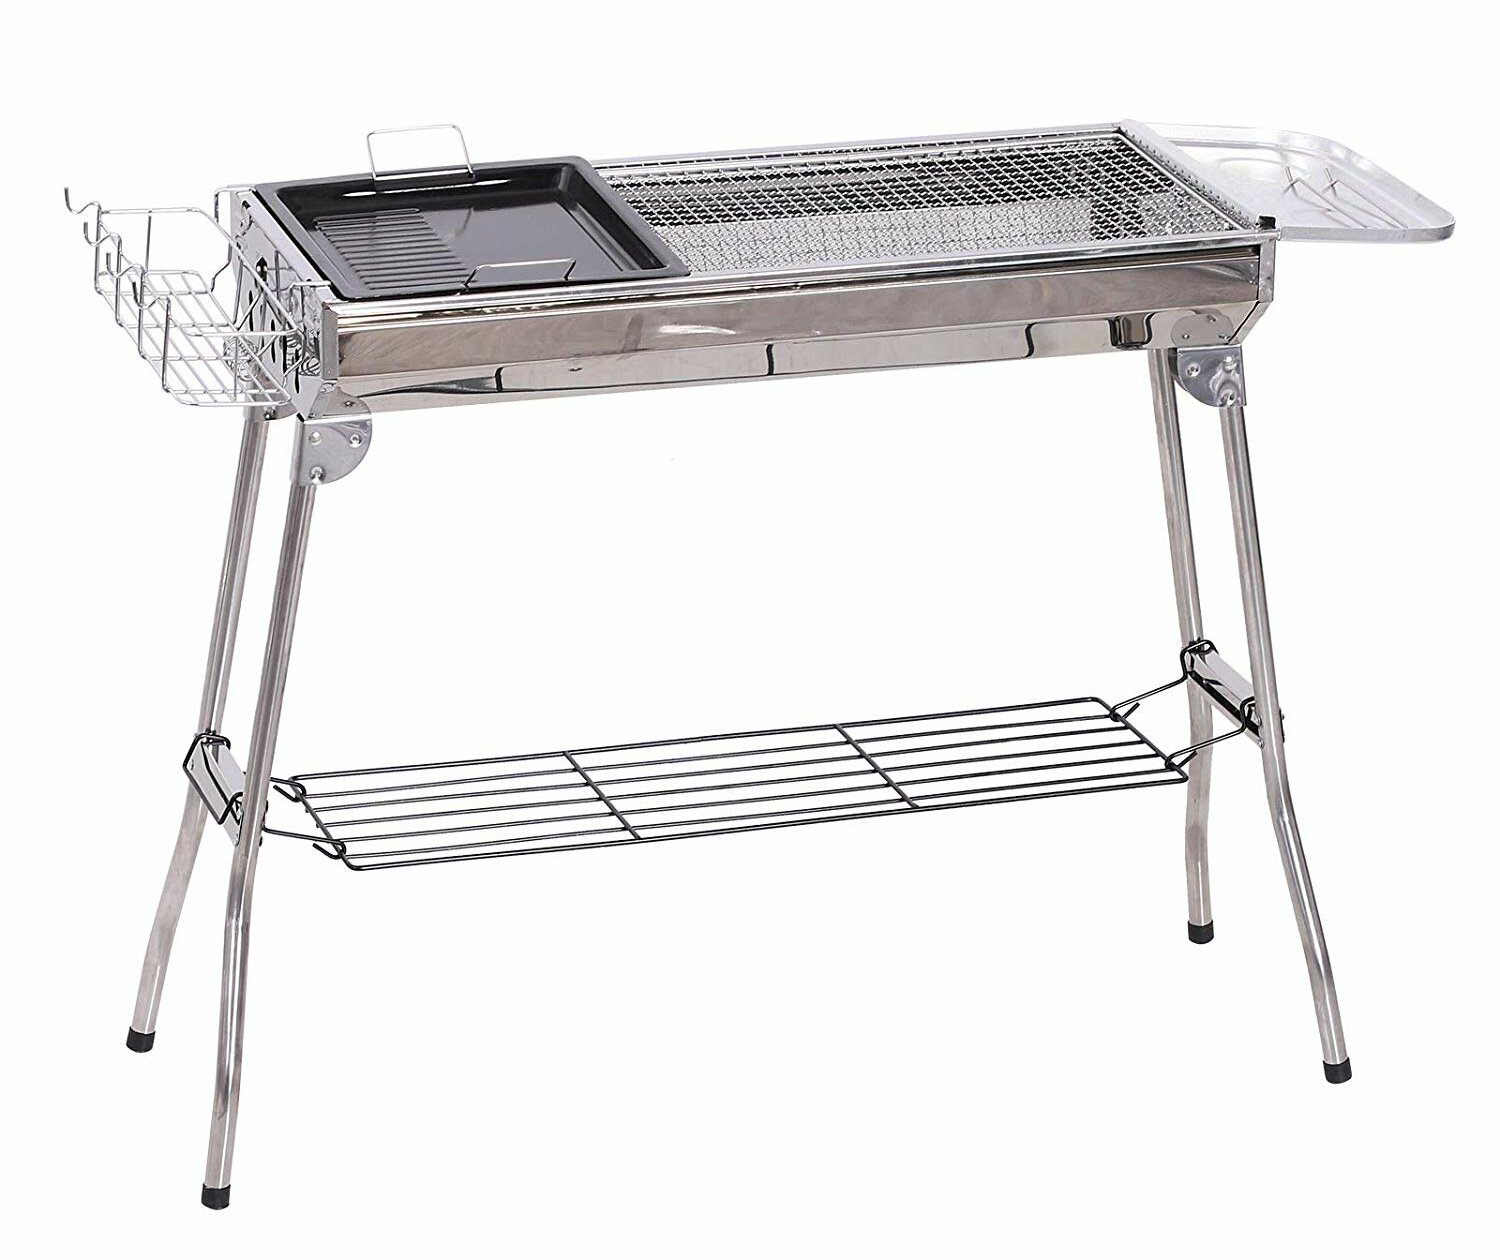 Portable Fold Camping Stainless Steel Barrel BBQ Stove Charcoal Barbecue Table